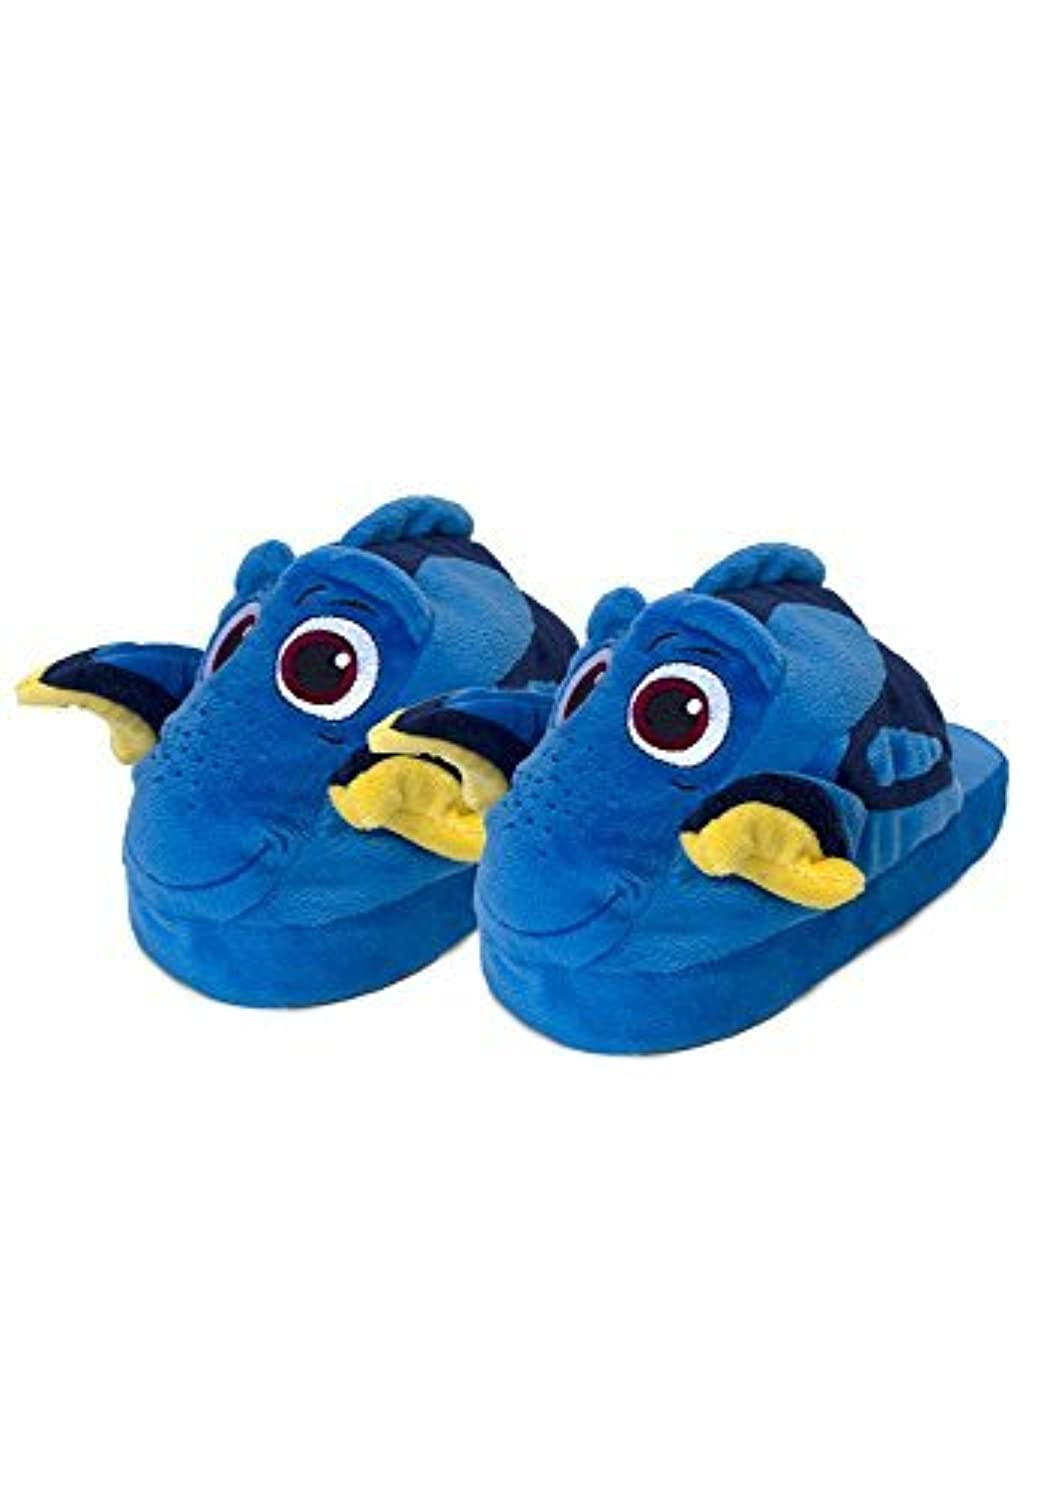 Stompeez Finding Dory - Dory (Size M - 13 to 2) by High Street TV